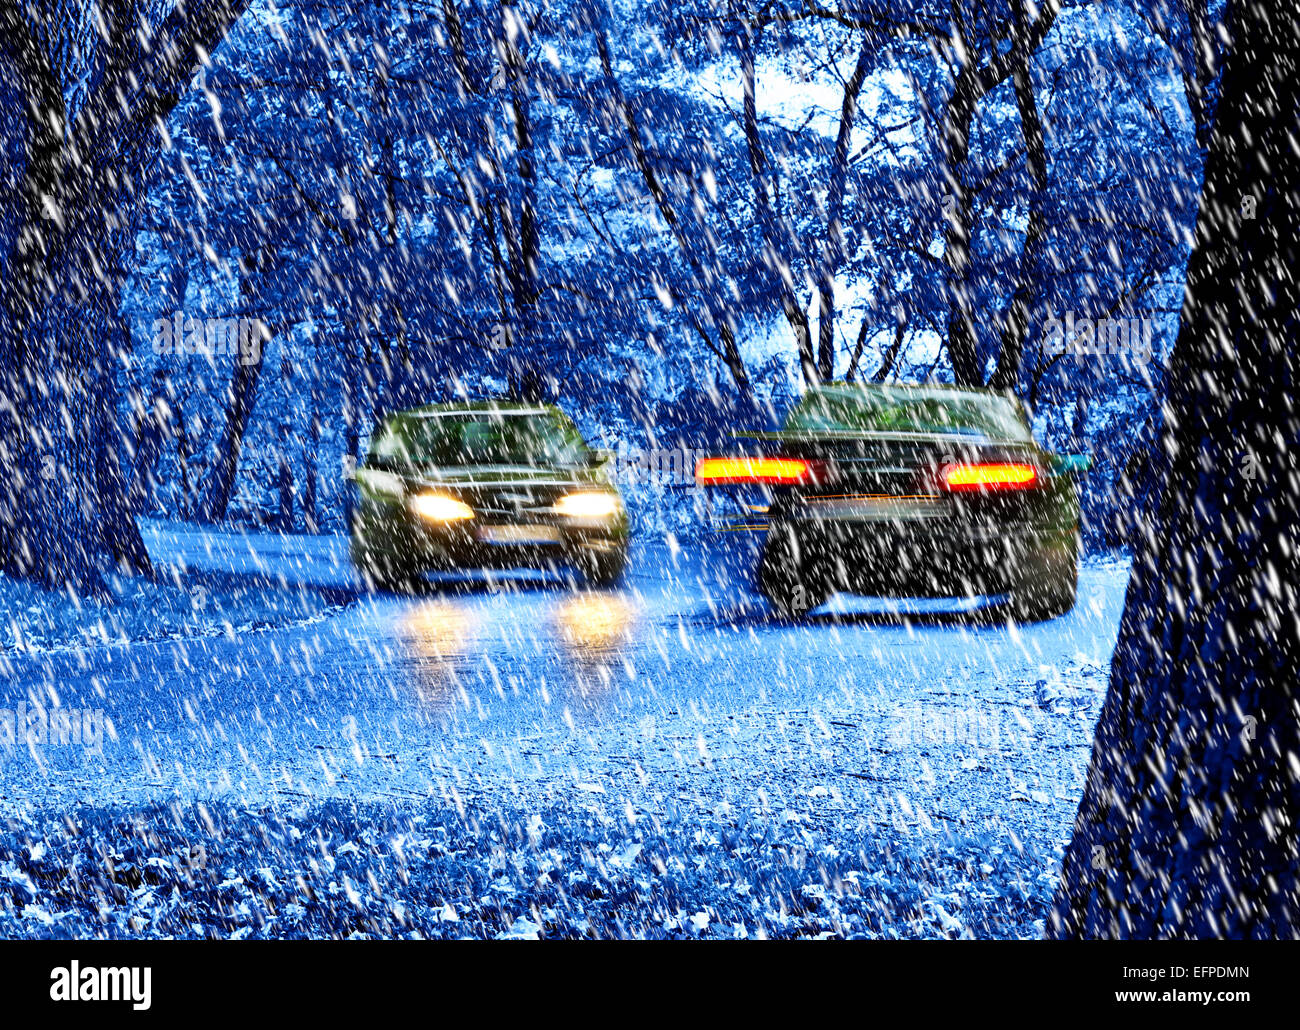 two cars moving in the snow fall by night - Stock Image